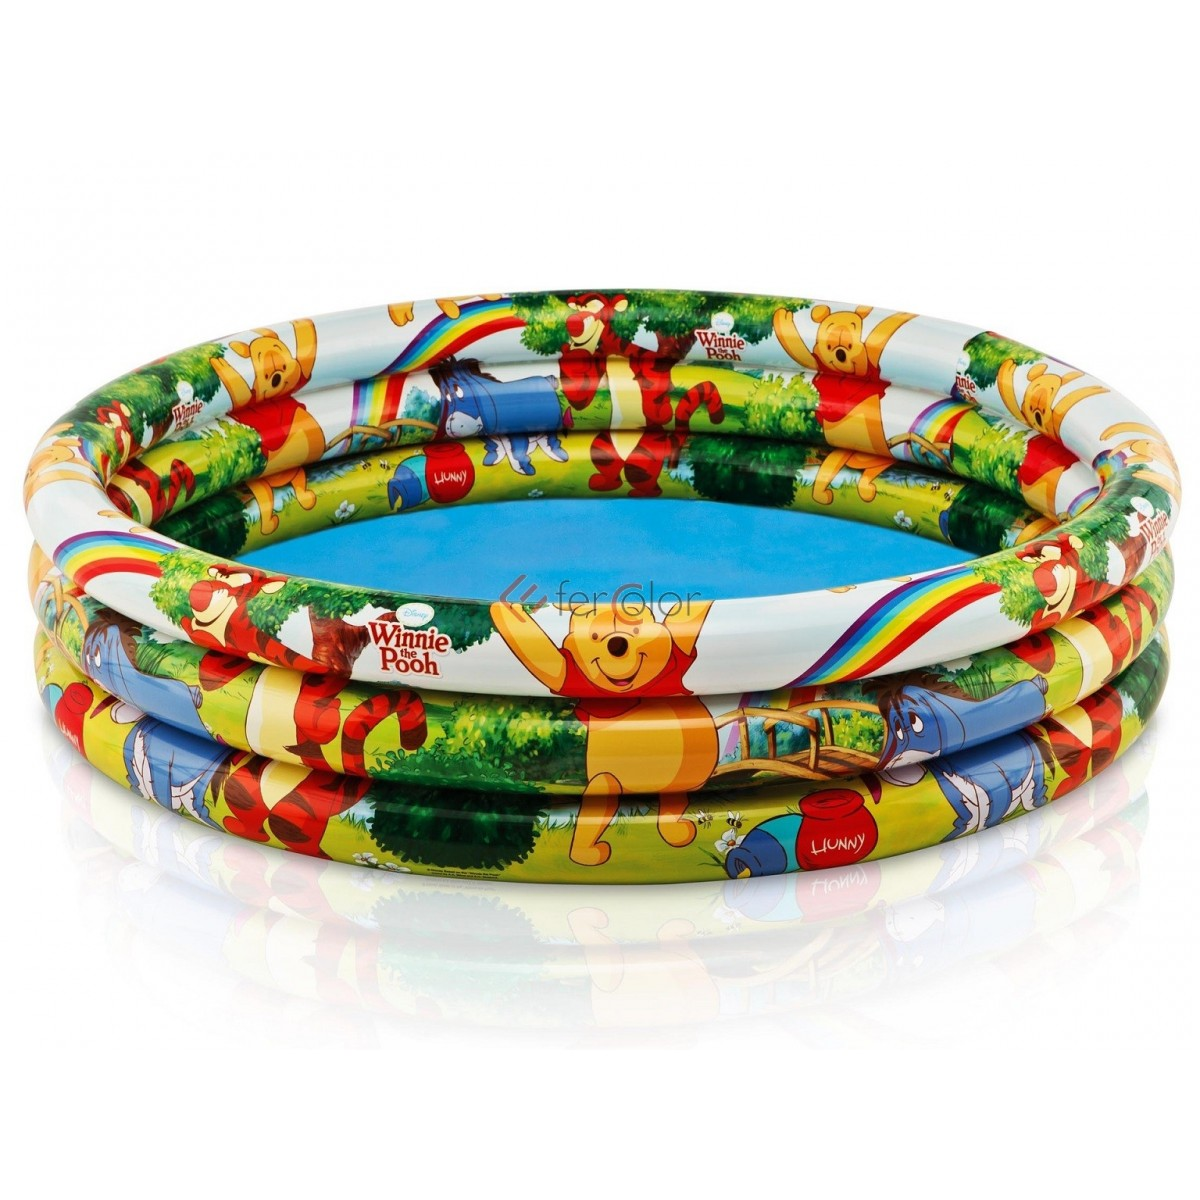 Intex Piscina Gonfiabile Piscina Gonfiabile 3 Anelli Intex Bambini Winnie The Pooh